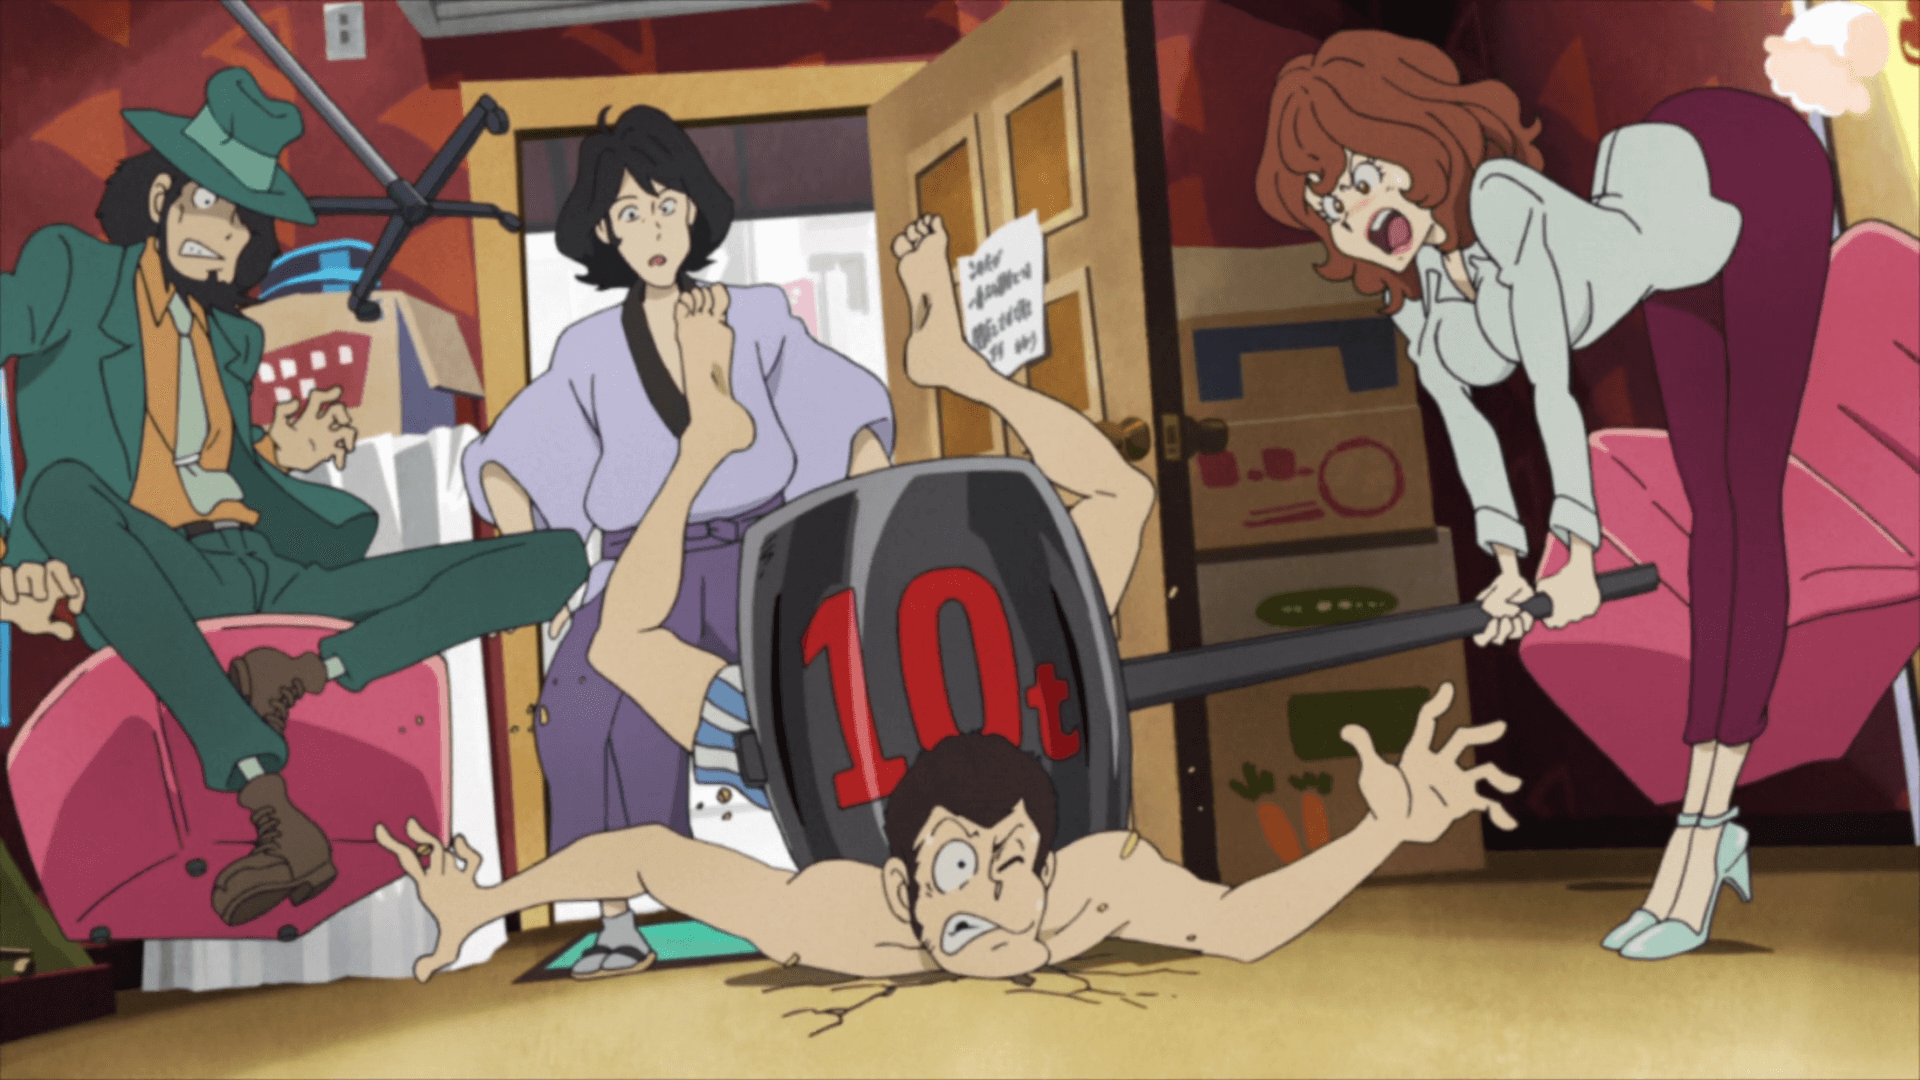 Lupin III Part V 06 001 29746 - Lupin III Part V Episode 06 Subtitle Indonesia